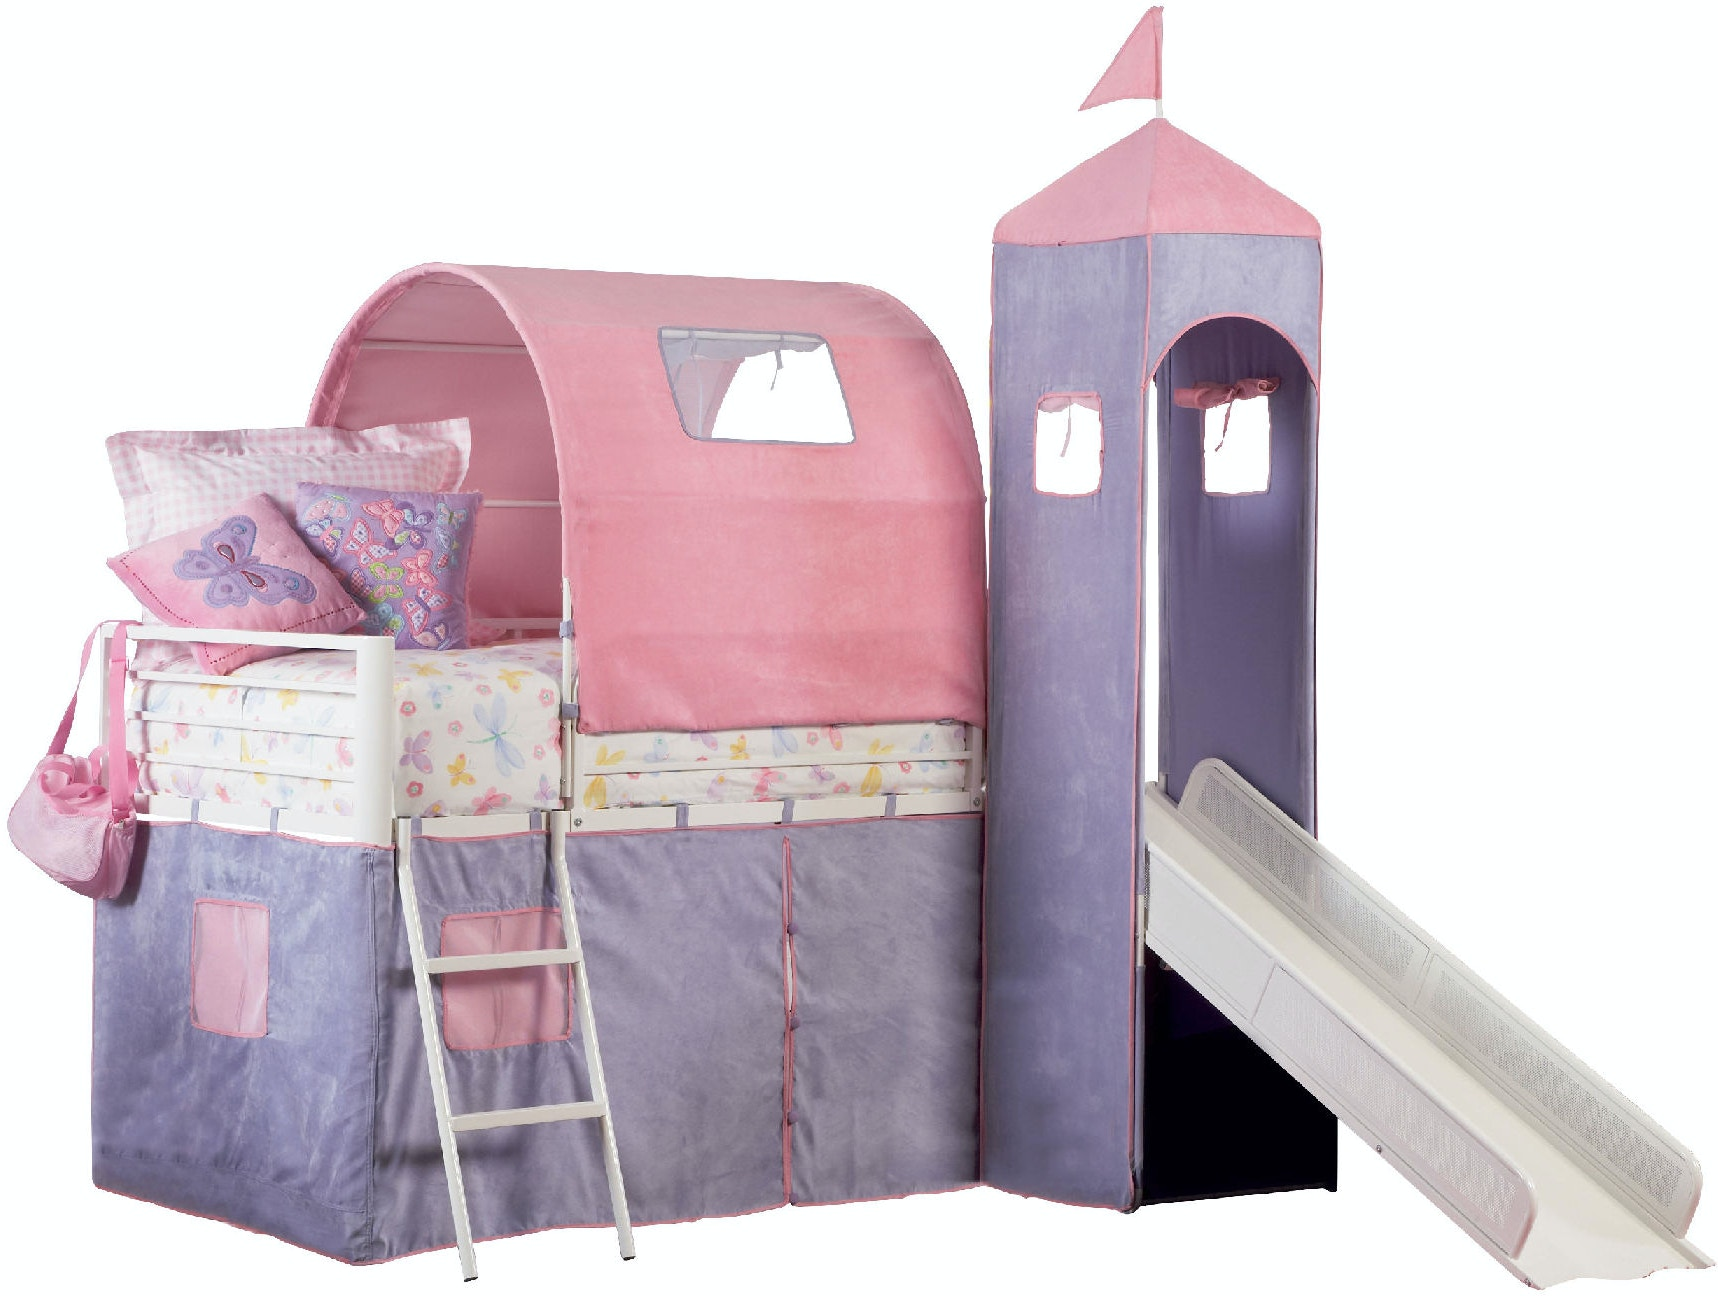 Powell Furniture Youth Princess Castle Twin Size Tent Bunk Bed With